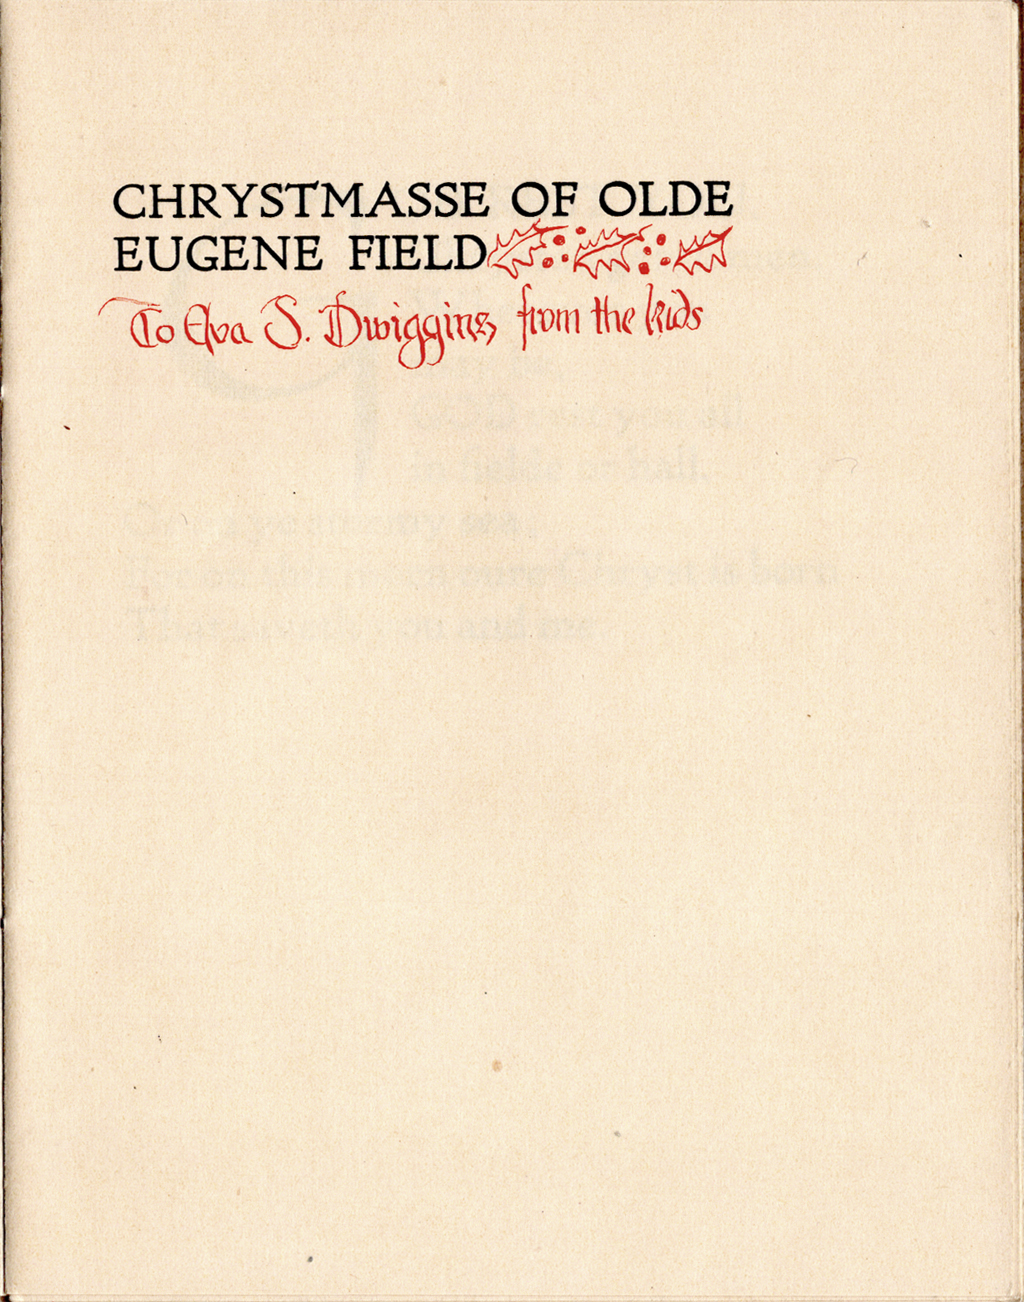 Title page of Chrystmasse of Olde by Eugene Field. Typography and decoration by W.A. Dwiggins. Printed at the Village Press, December 1904. Boston Public Library, 1974 Dwiggins Collection, Box 37, Folder 20.